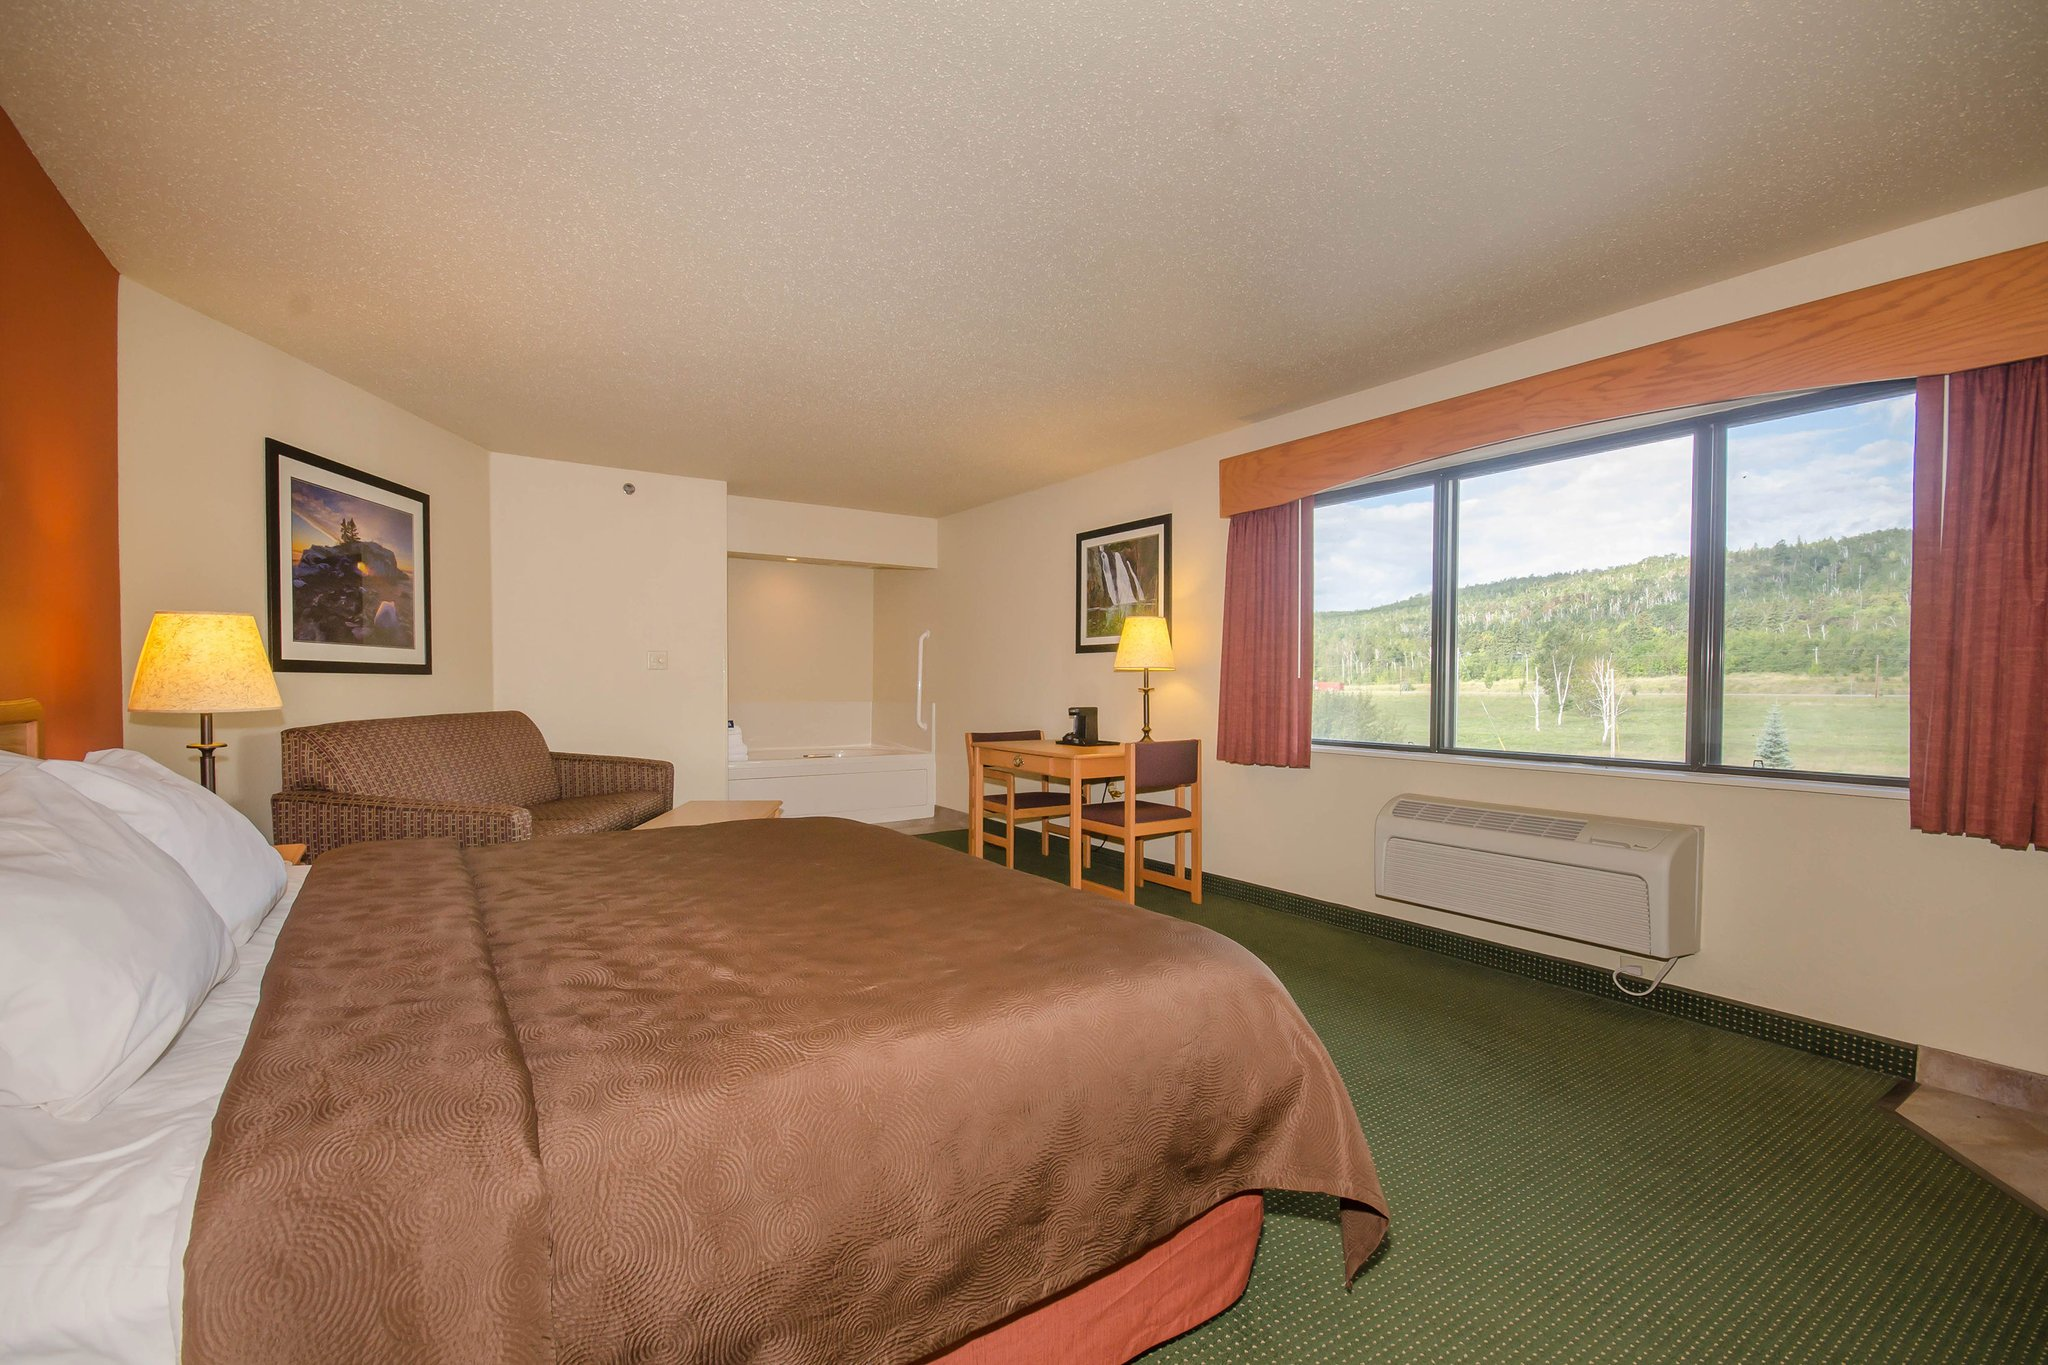 AmericInn Lodge & Suites Silver Bay